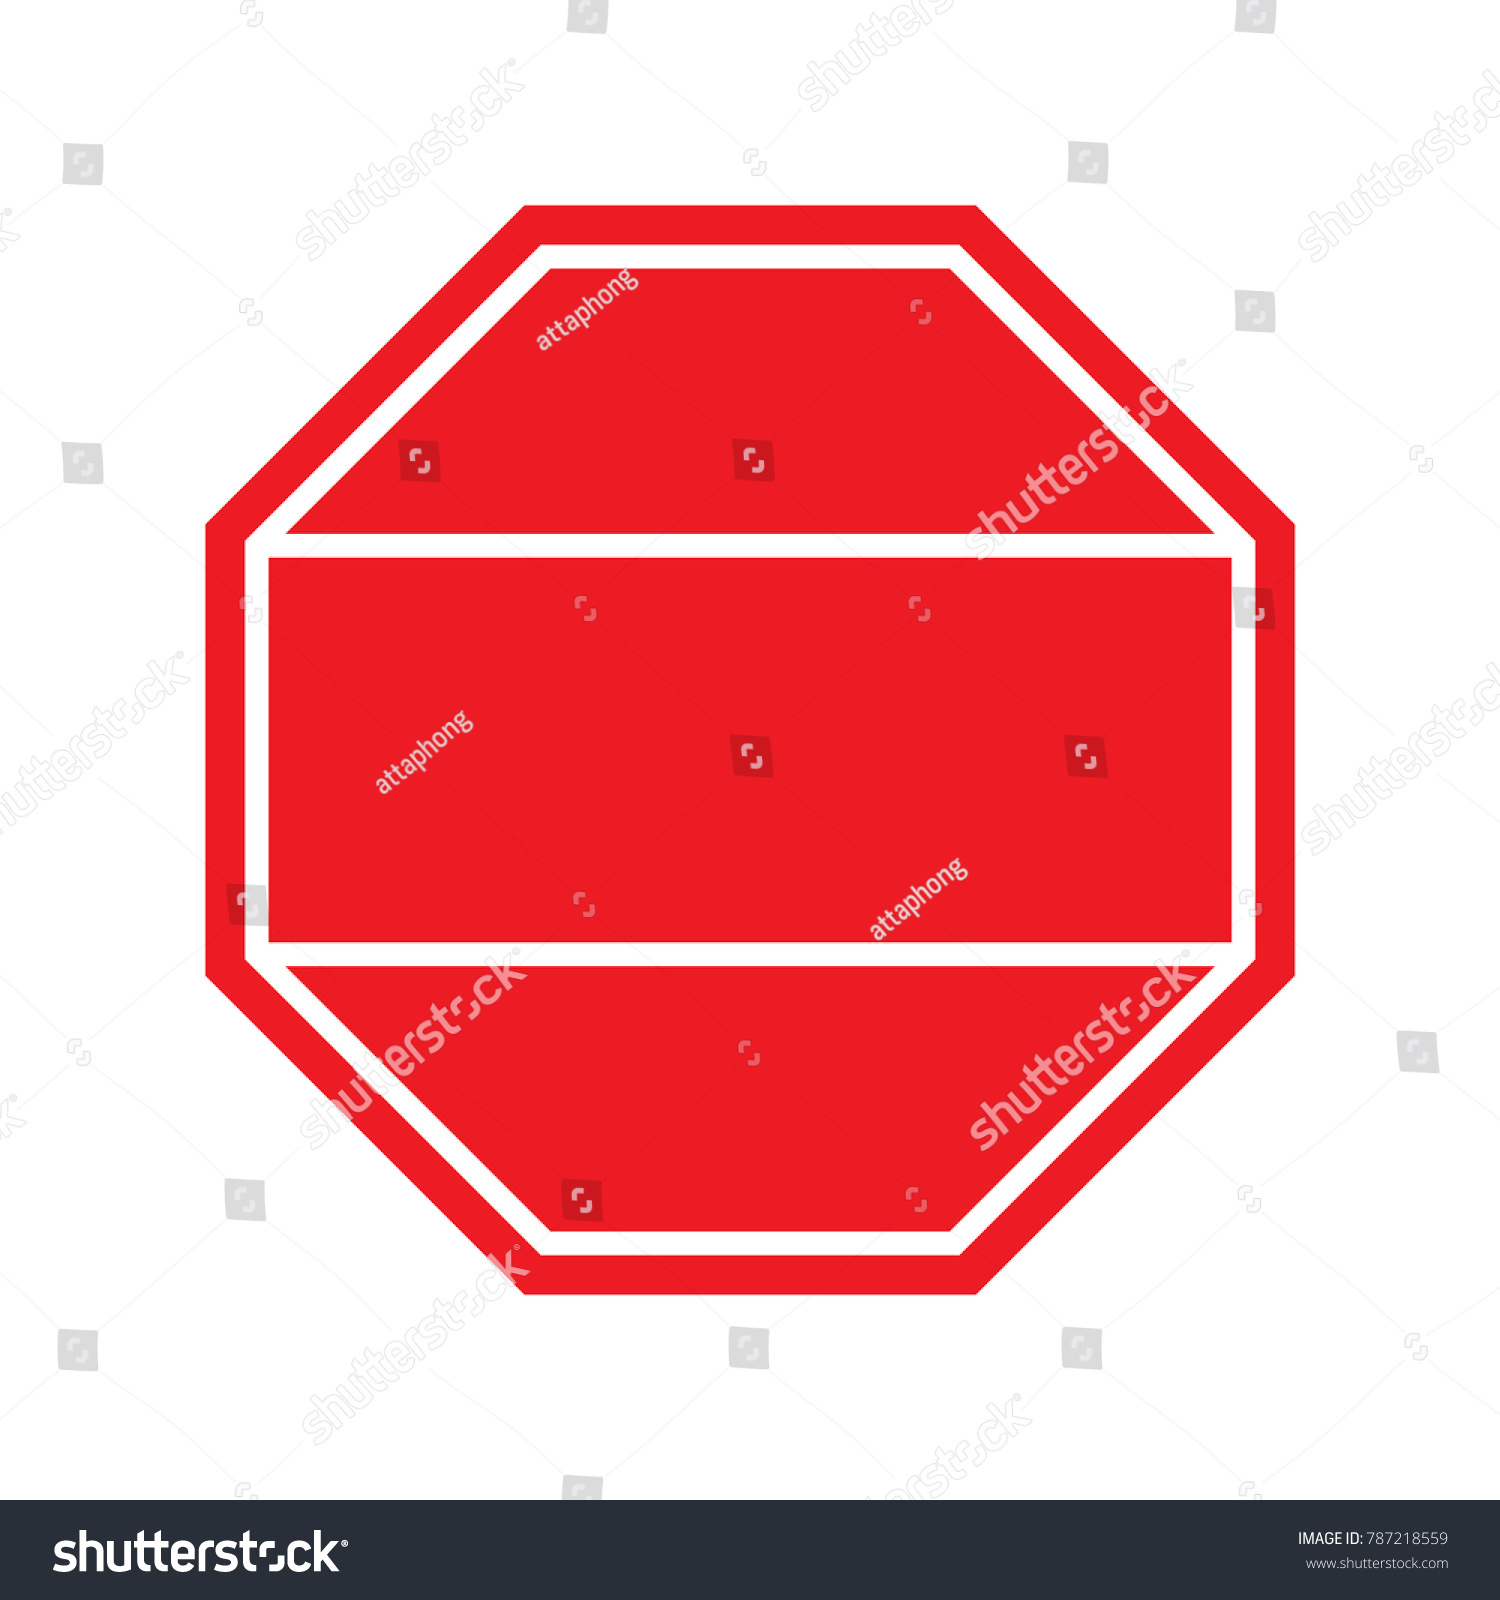 Stop light symbol images symbol and sign ideas traffic signal symbol sign stop ahead stock vector 787218559 traffic signal symbol sign stop ahead signs buycottarizona